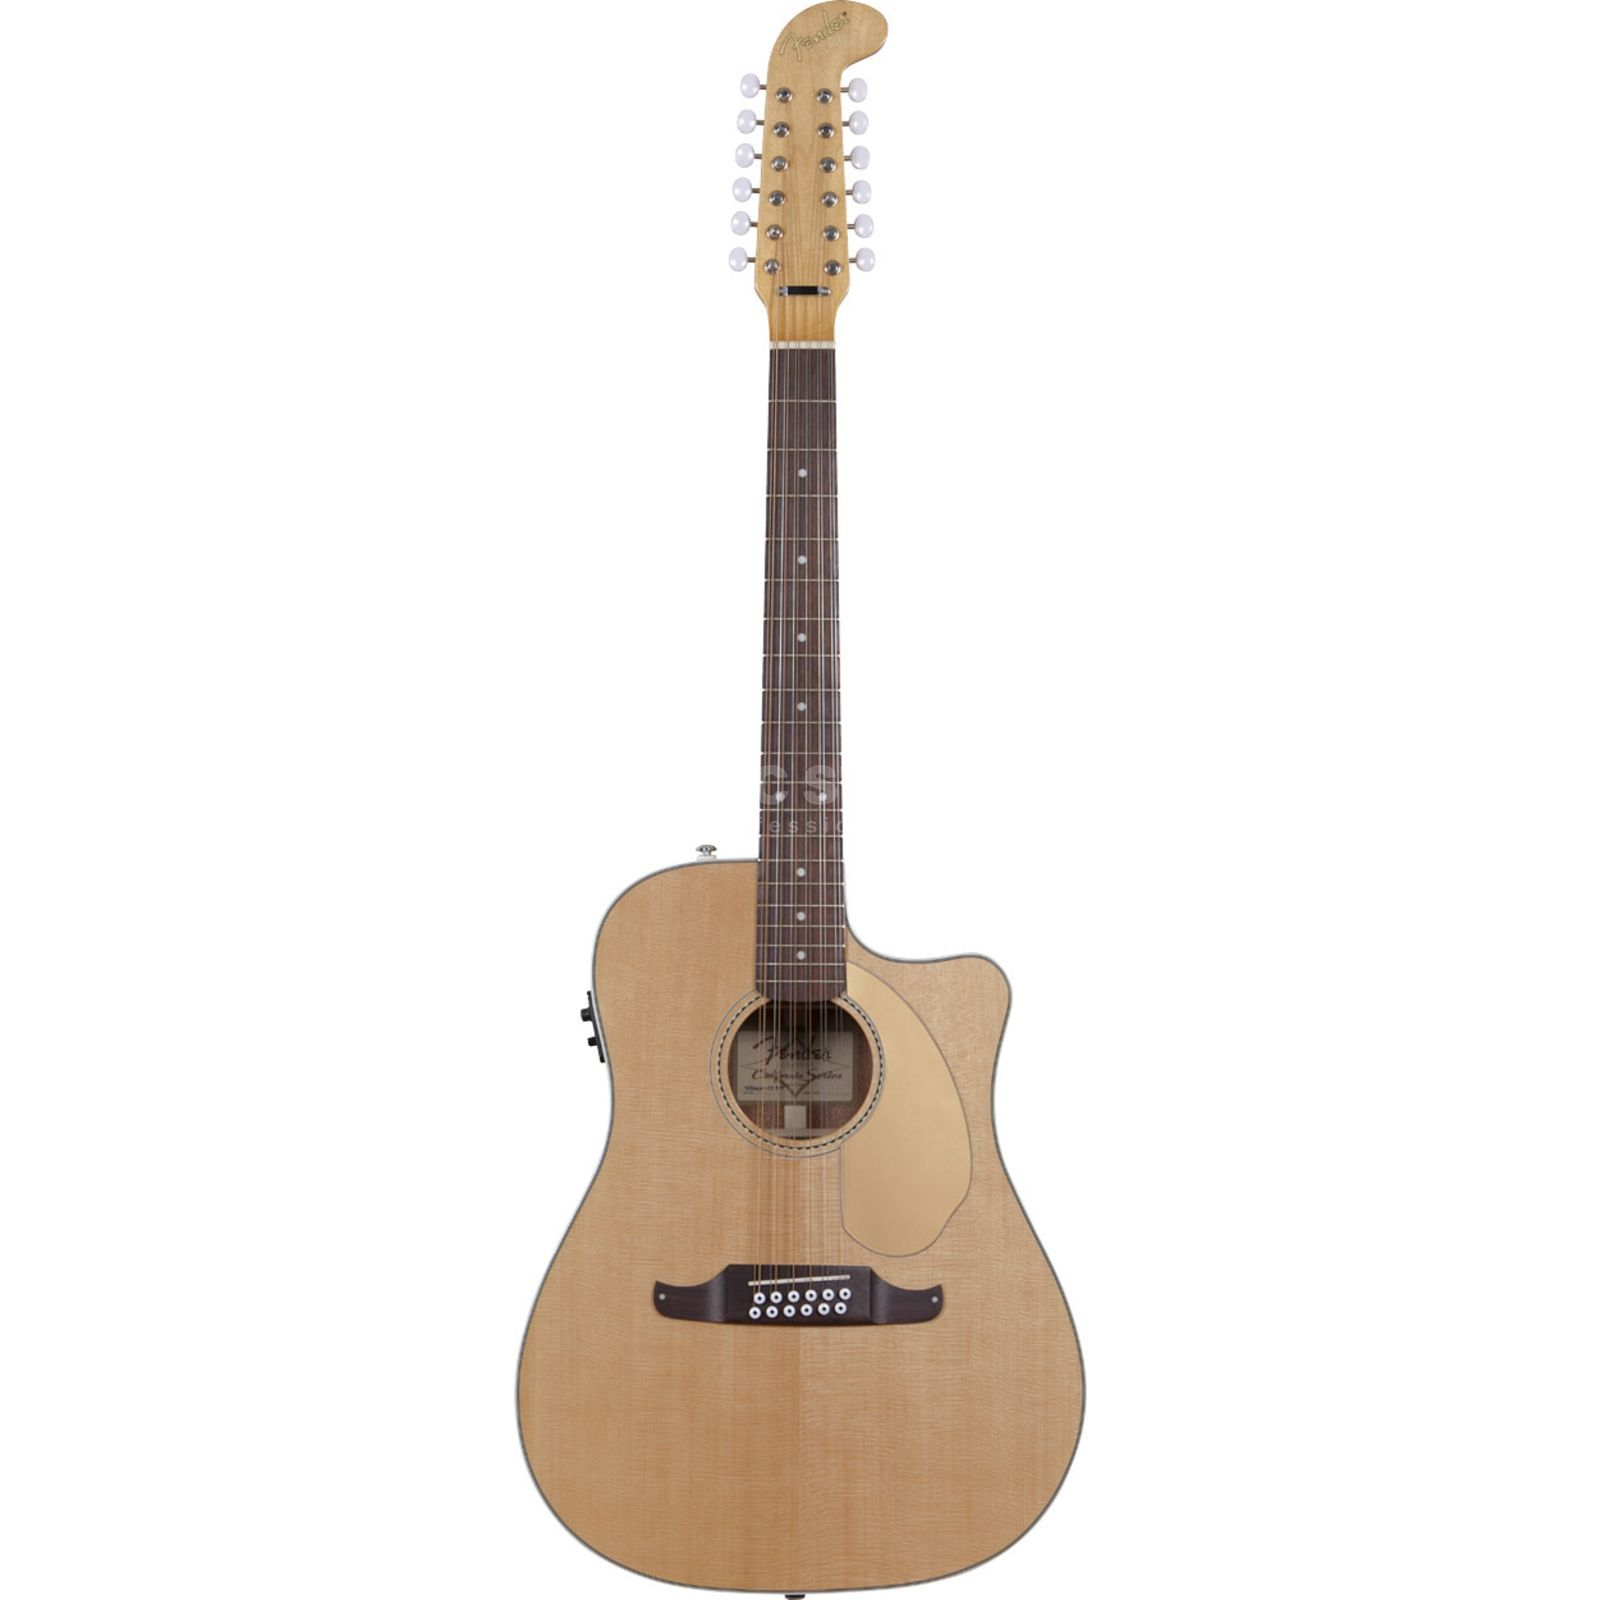 Fender Villager 12 String Electro Aco ustic Guitar   Product Image